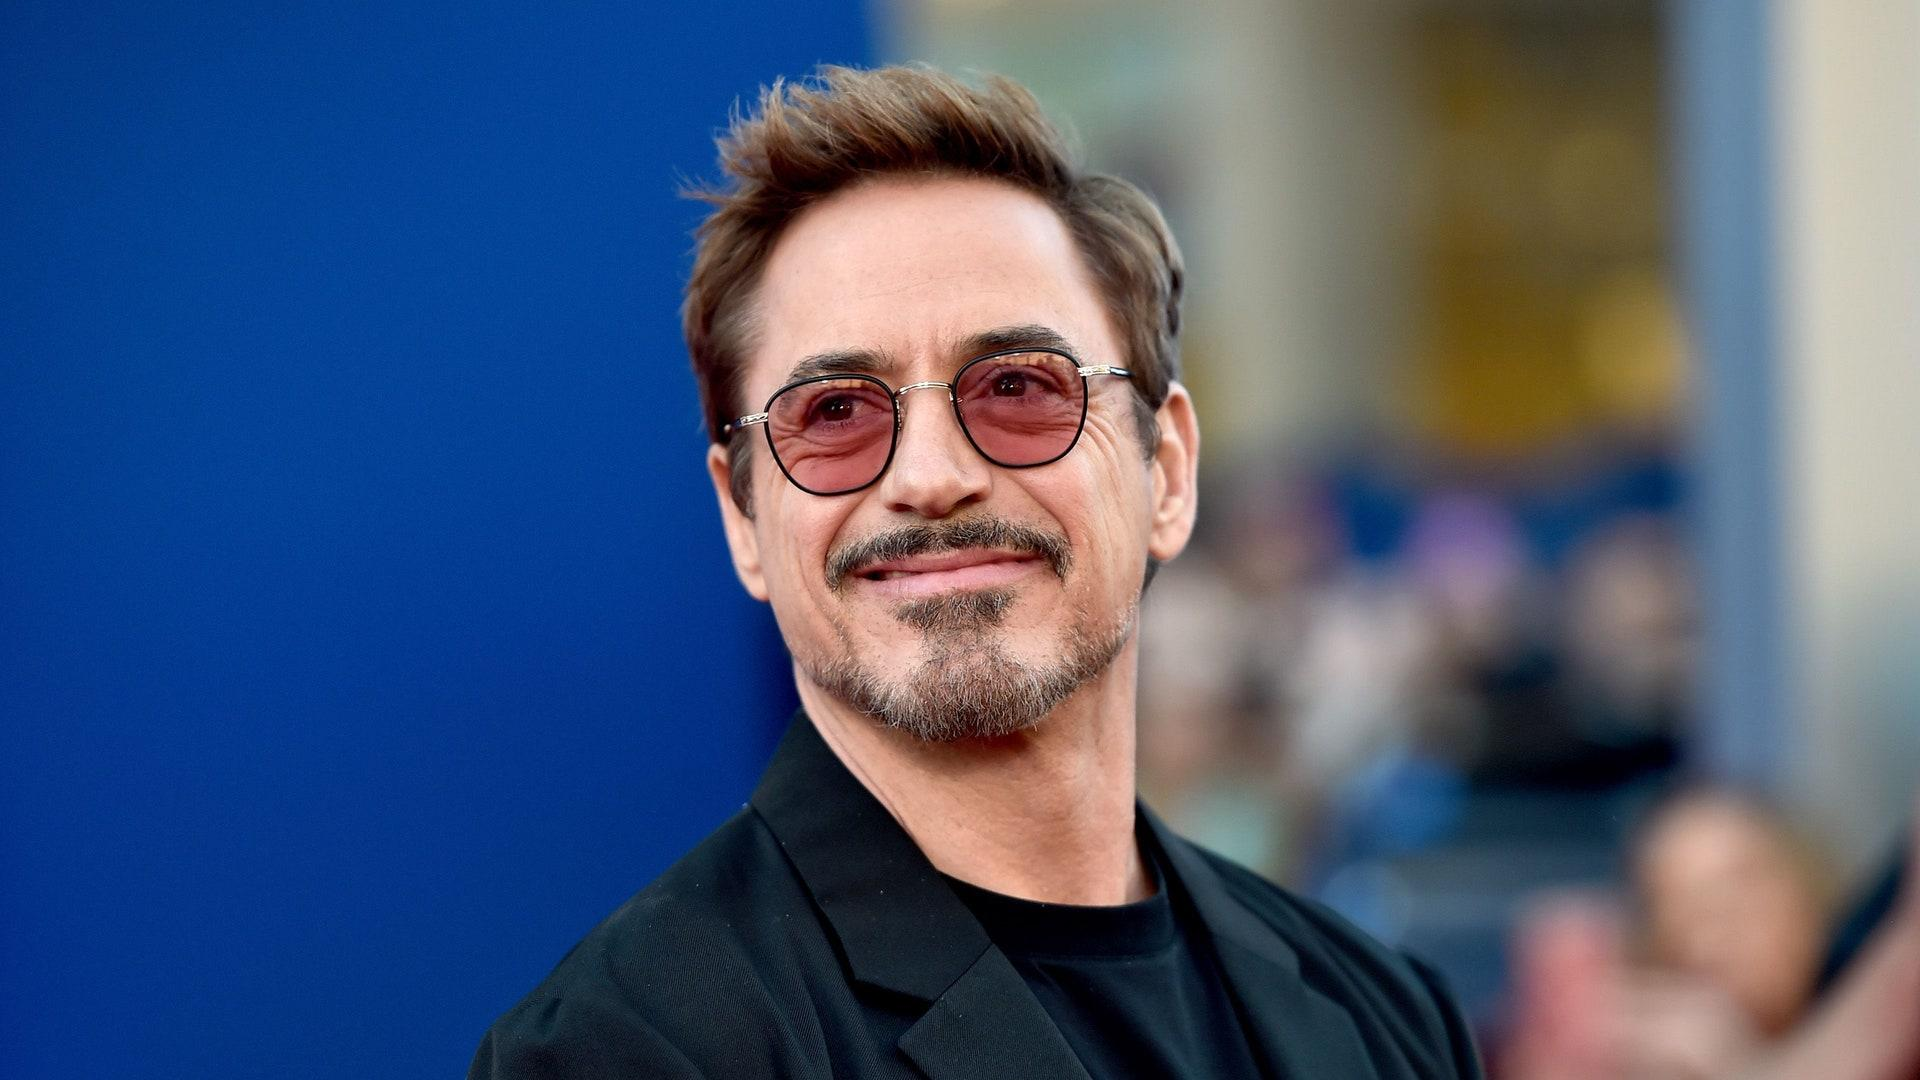 5 lessons and habits from Robert Downey Jr to reinvent